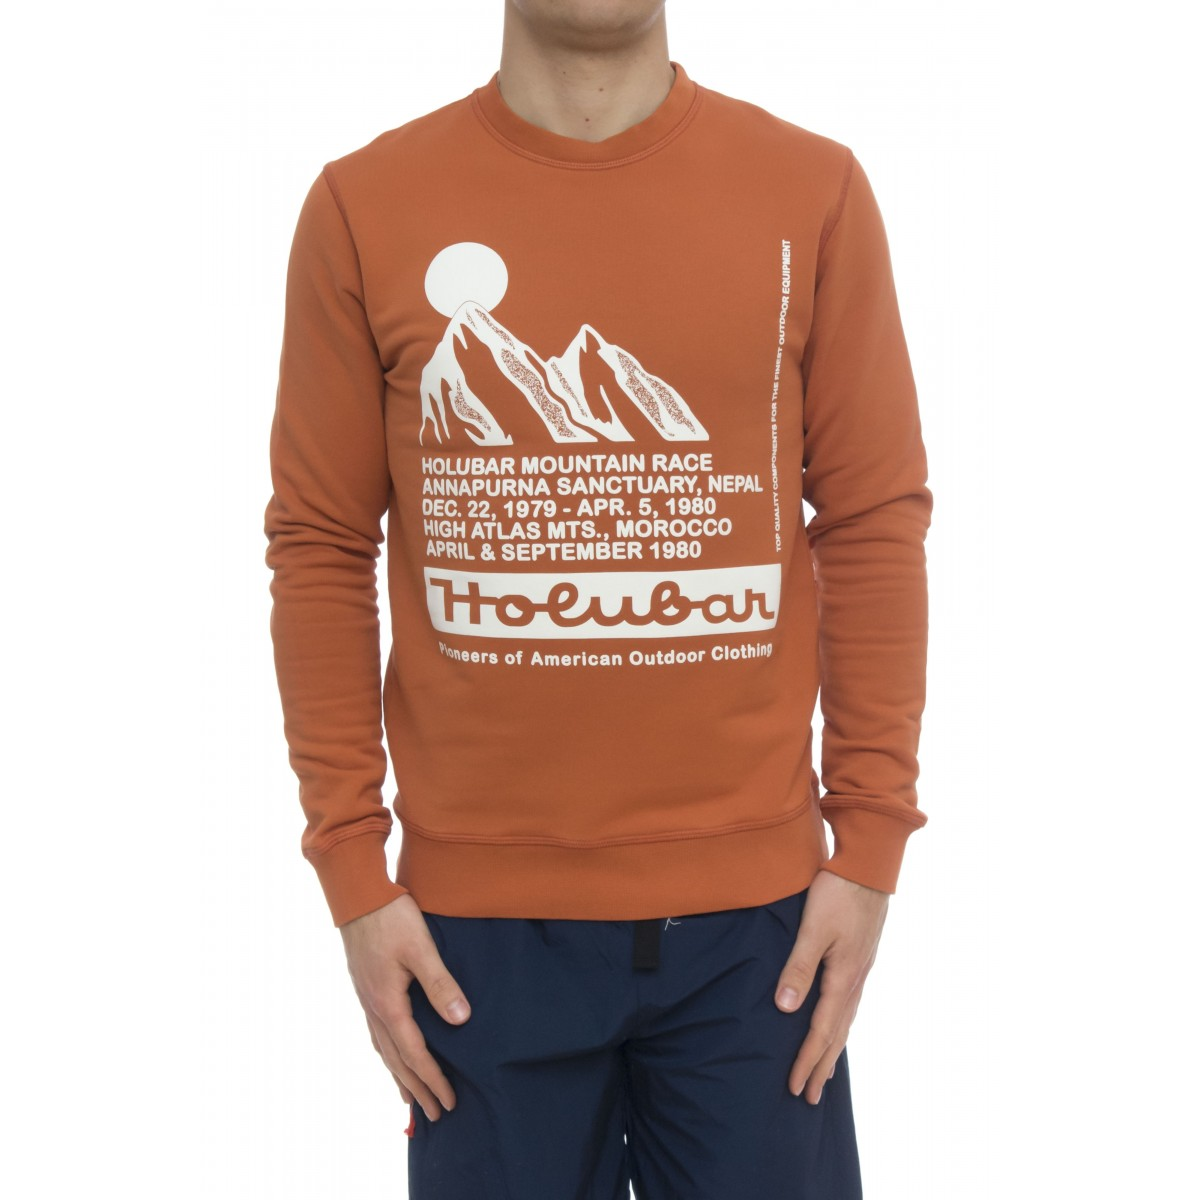 Felpa uomo - Tribute sweaters mountain race